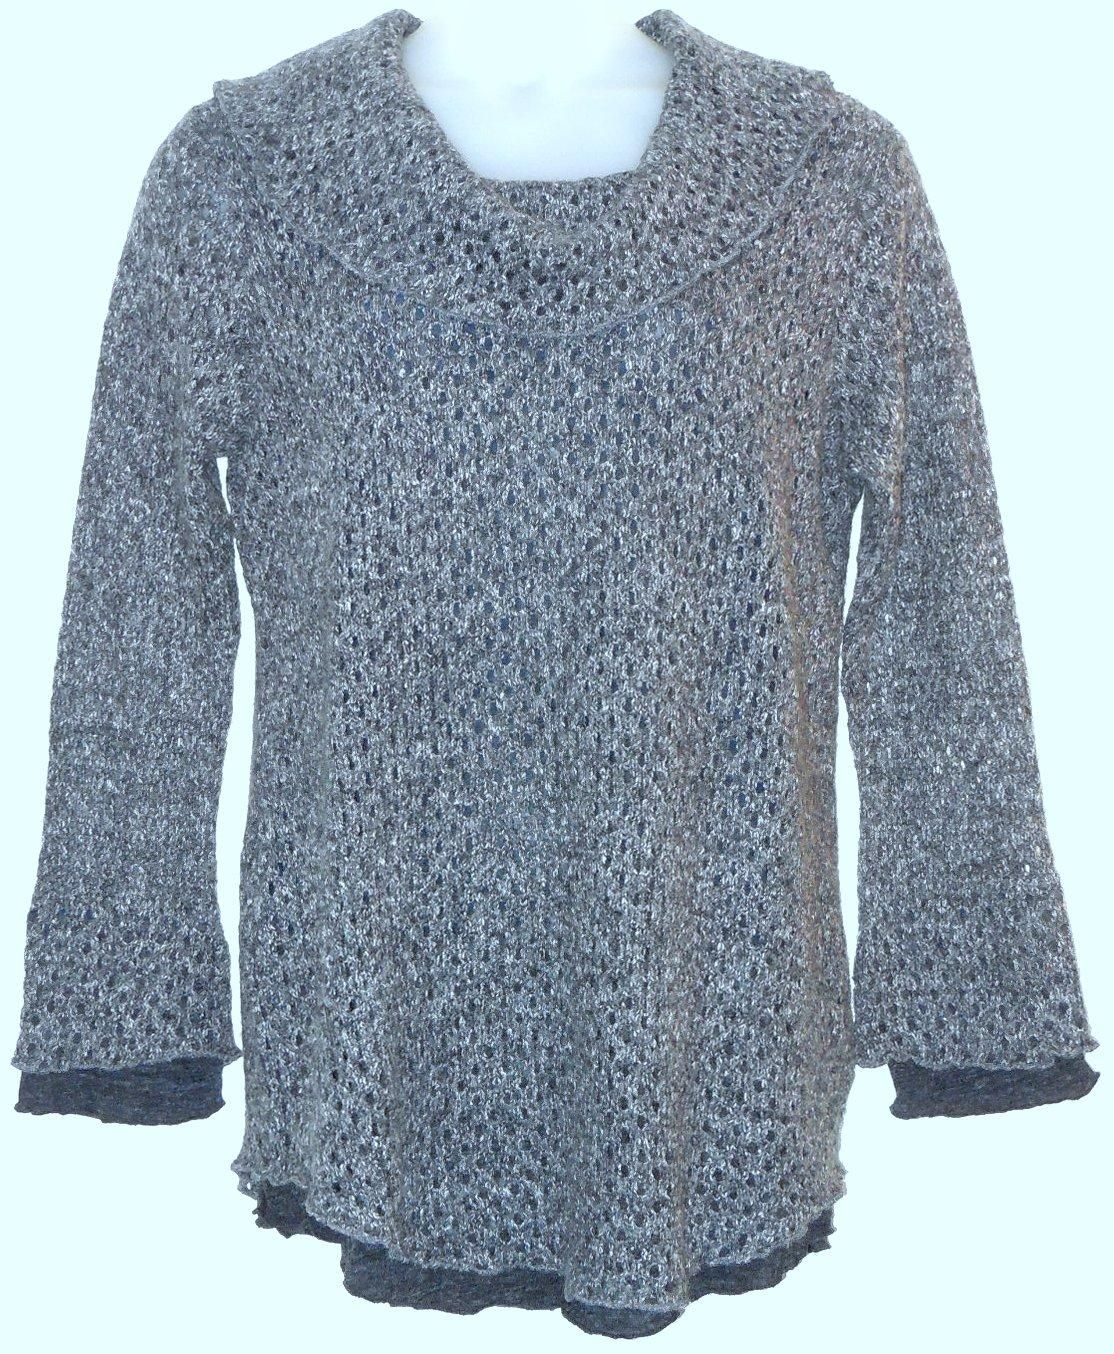 75ec00a85d3 Soft Surroundings Cowl Tunic Sweater. Free shipping and guaranteed  authenticity on Soft Surroundings Cowl Tunic SweaterWonderful layered look  cowl neck ...